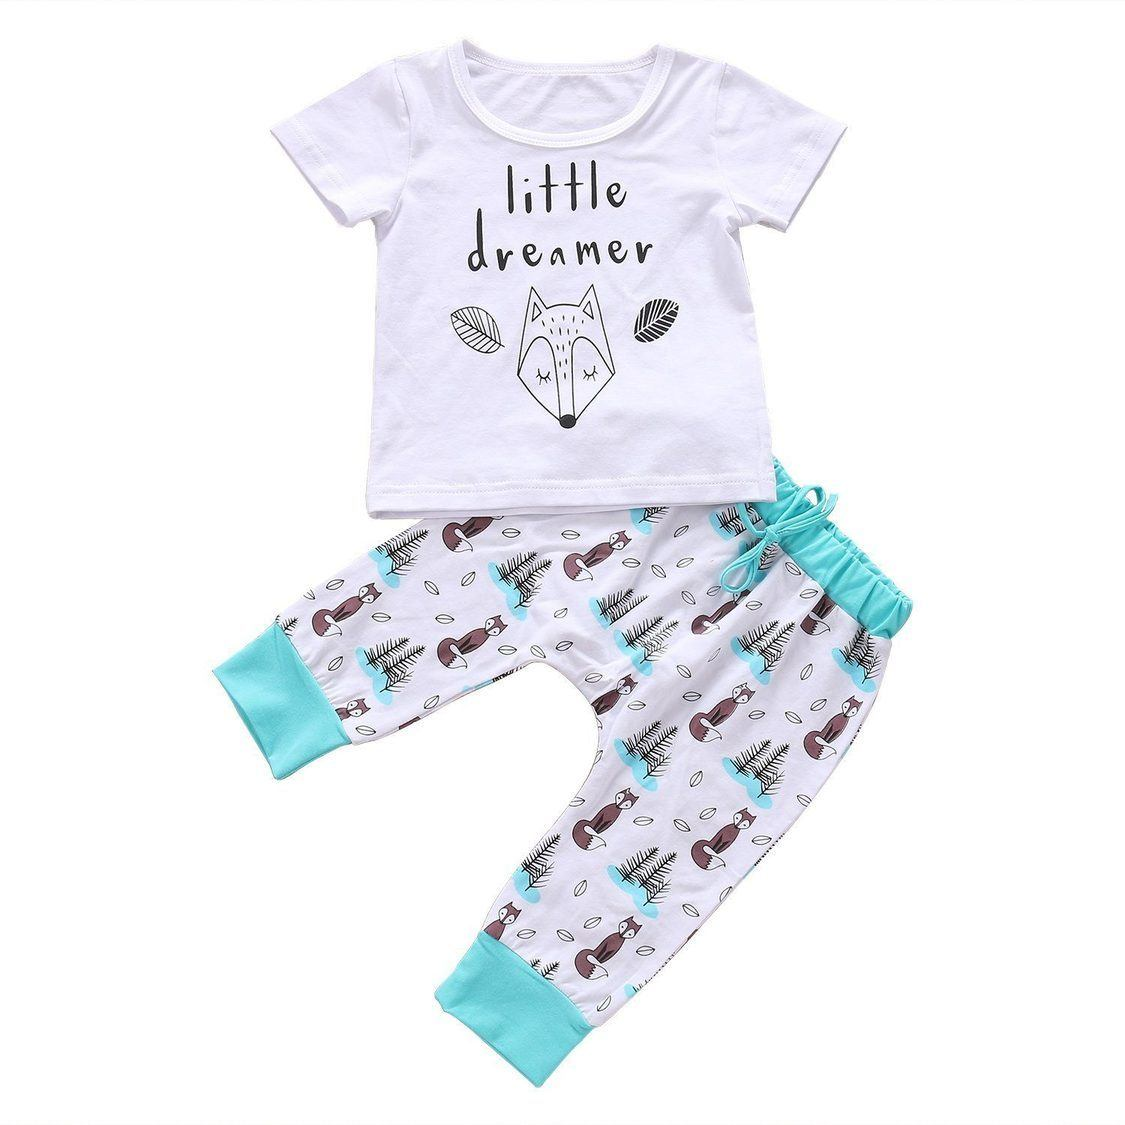 Little Dreamer Set - The Trendy Toddlers